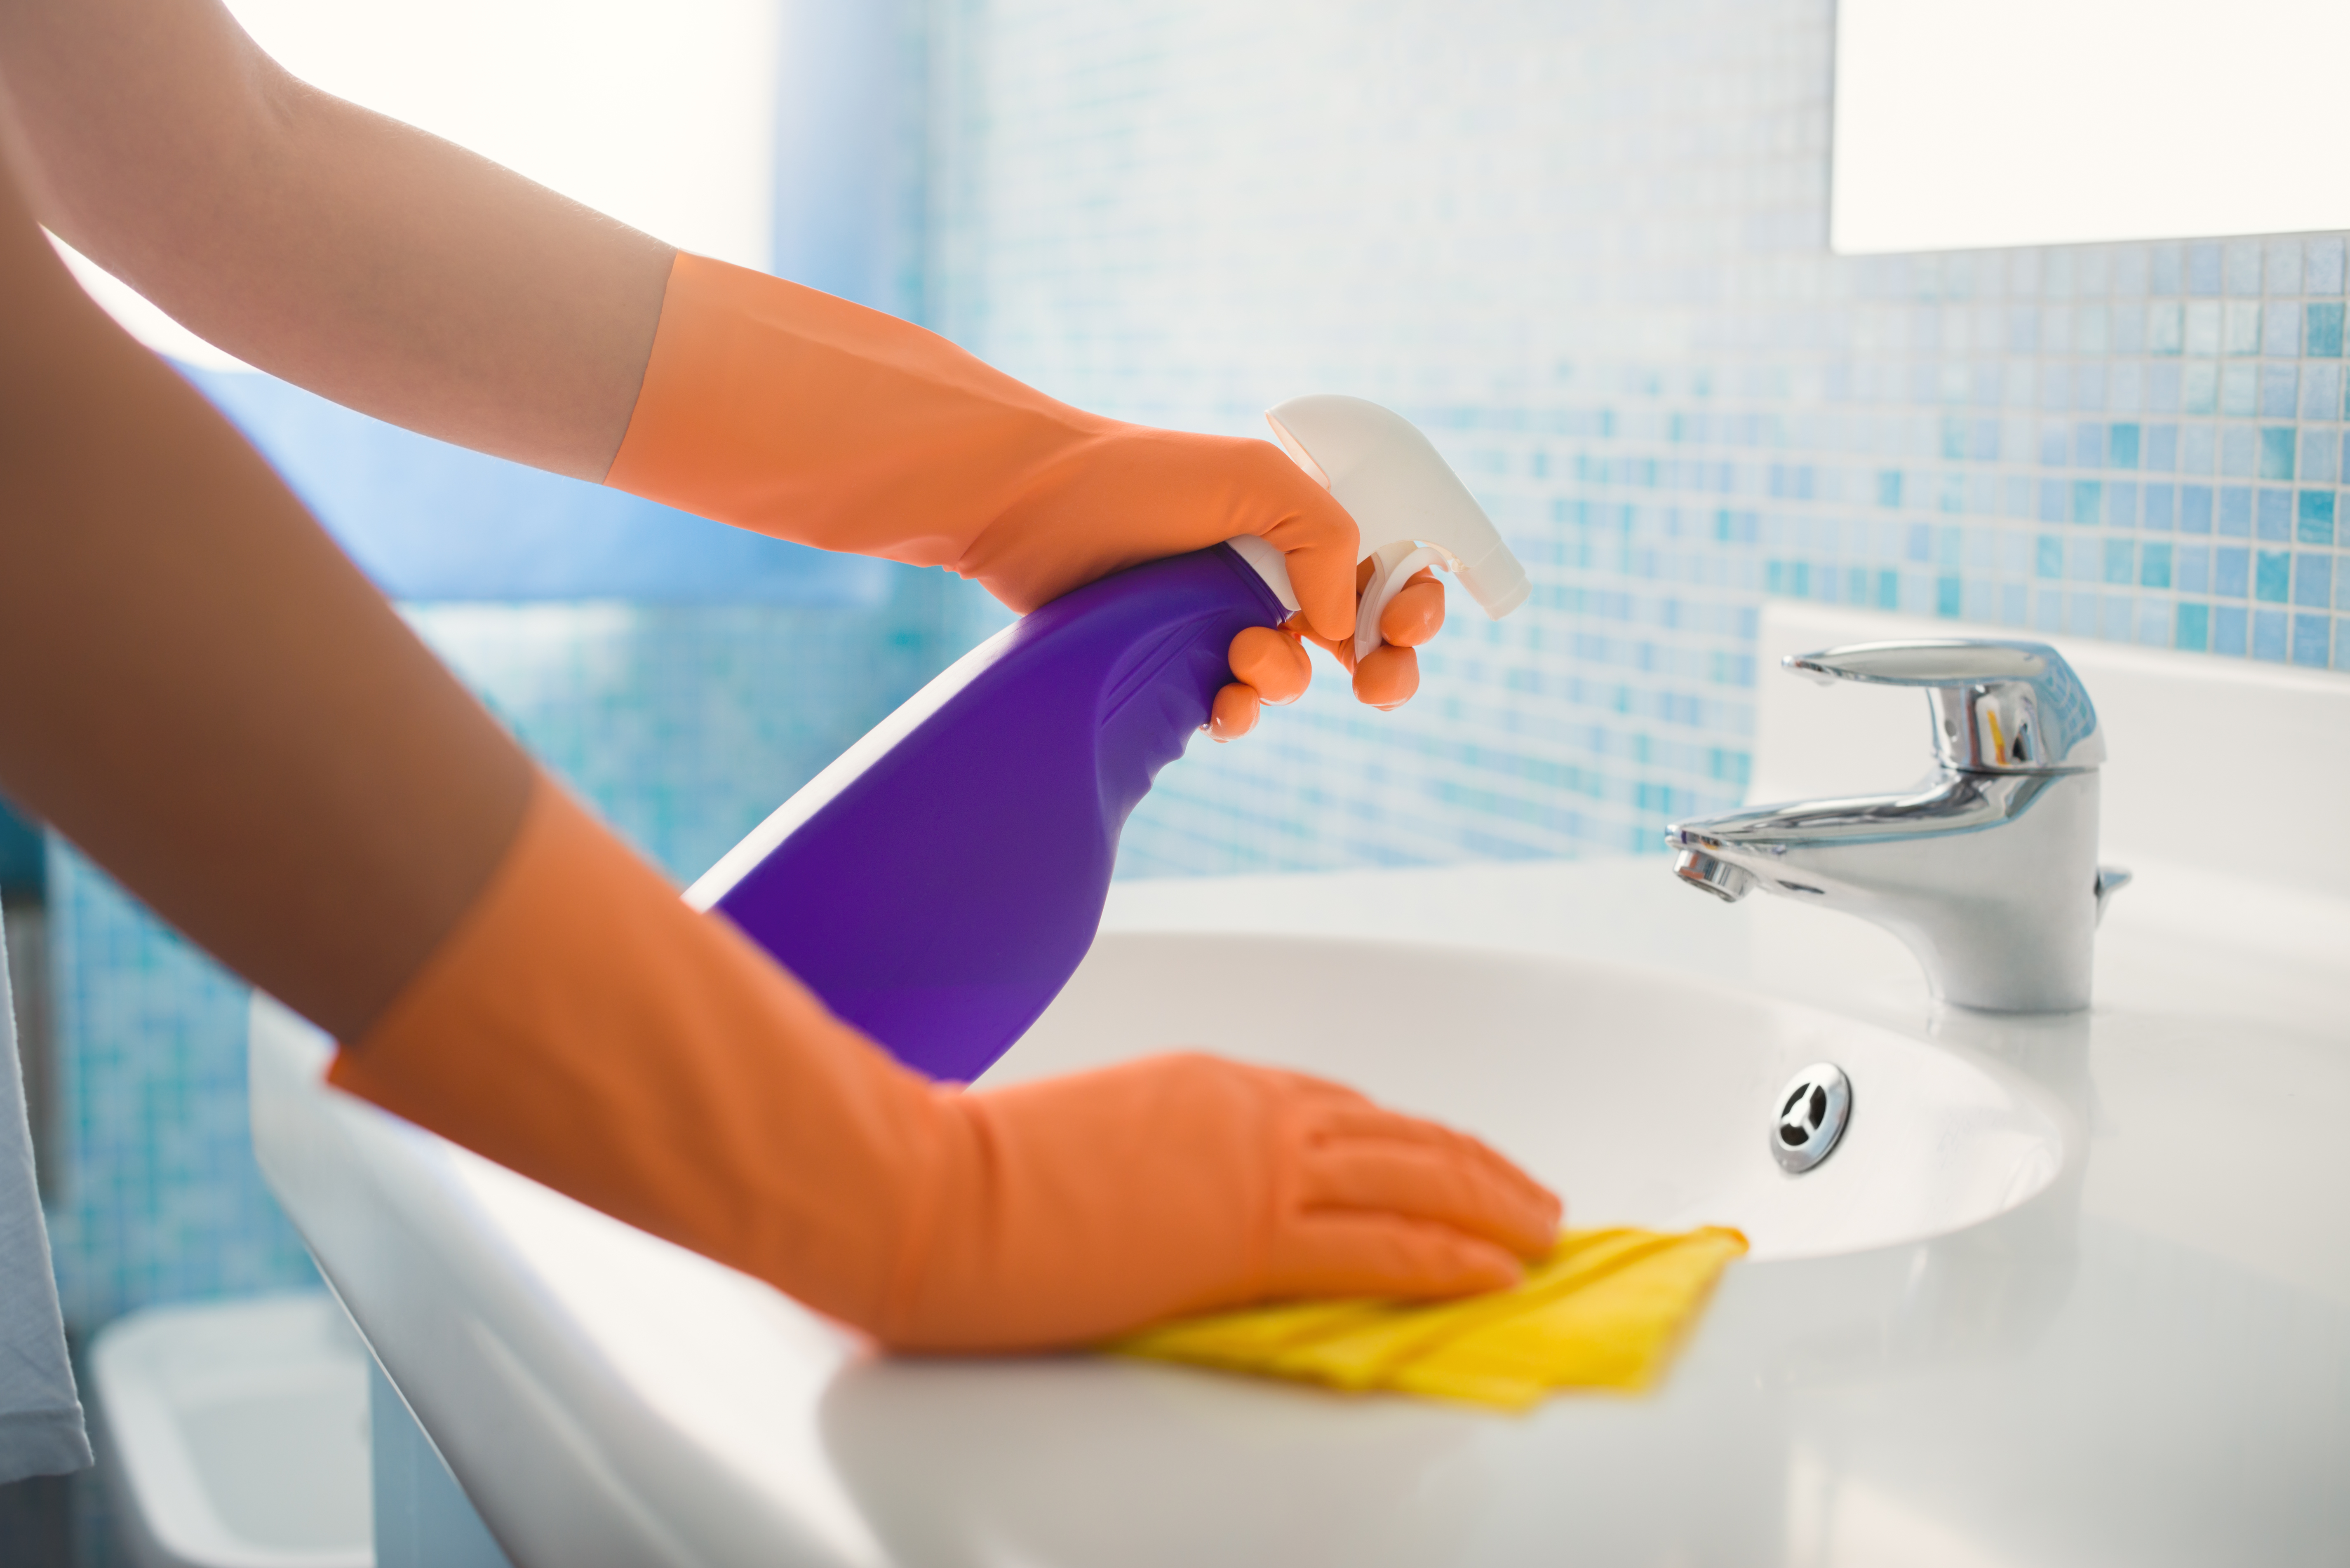 There Are A Lot Of Diffe Things You Can Do To Ensure Your Home Is Clean And Safe For Family But What Make Life Little Bit Easier When